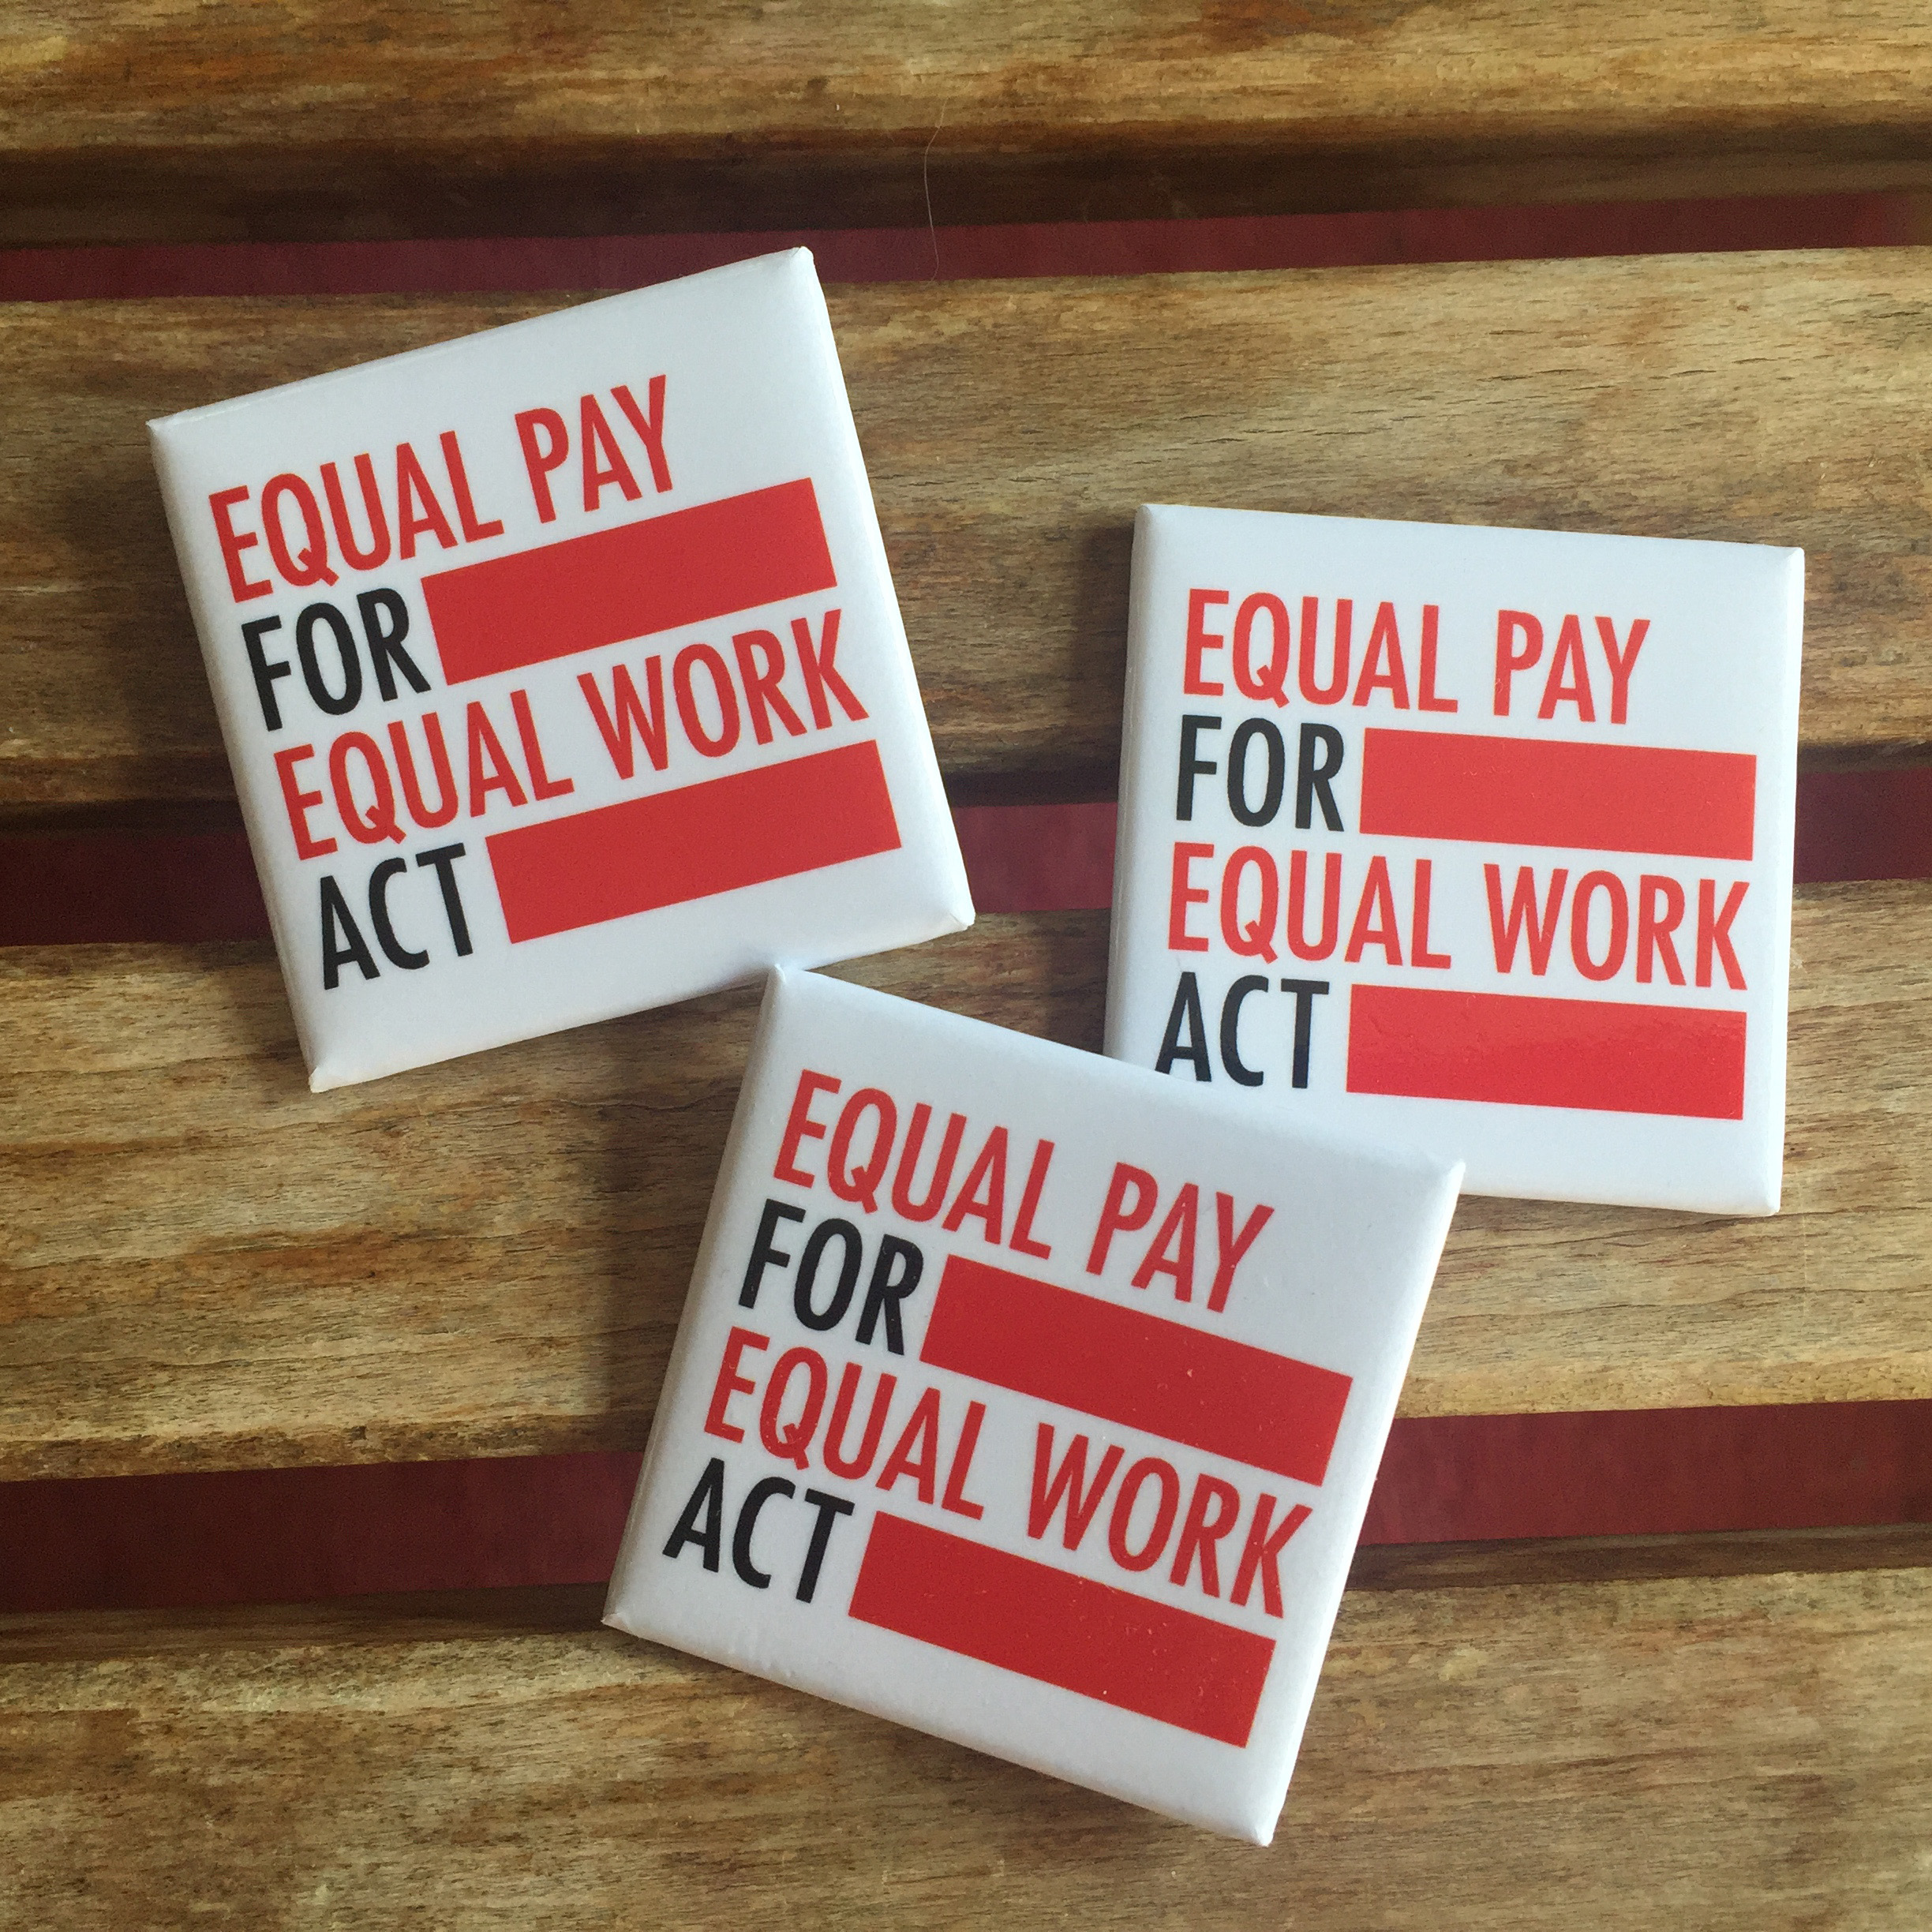 Equal Pay For Equal Work Act LOGO